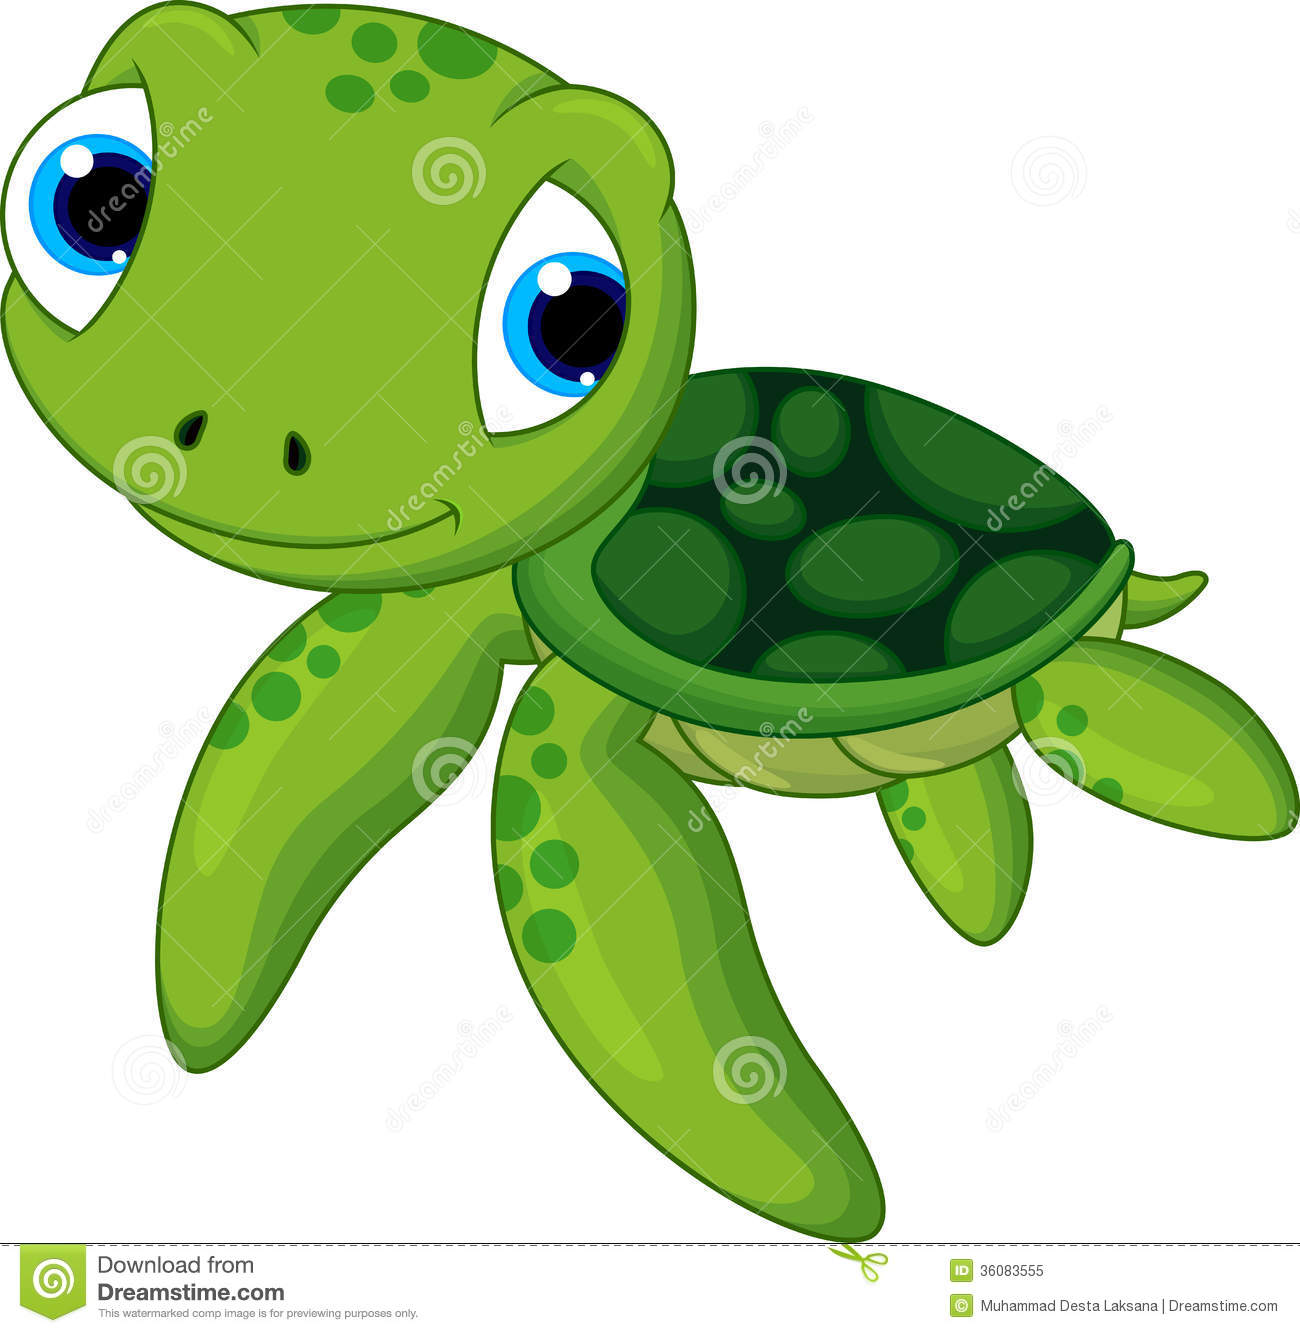 Cute Baby Turtle With A Cute Smile-Cute Baby Turtle With A Cute Smile-5